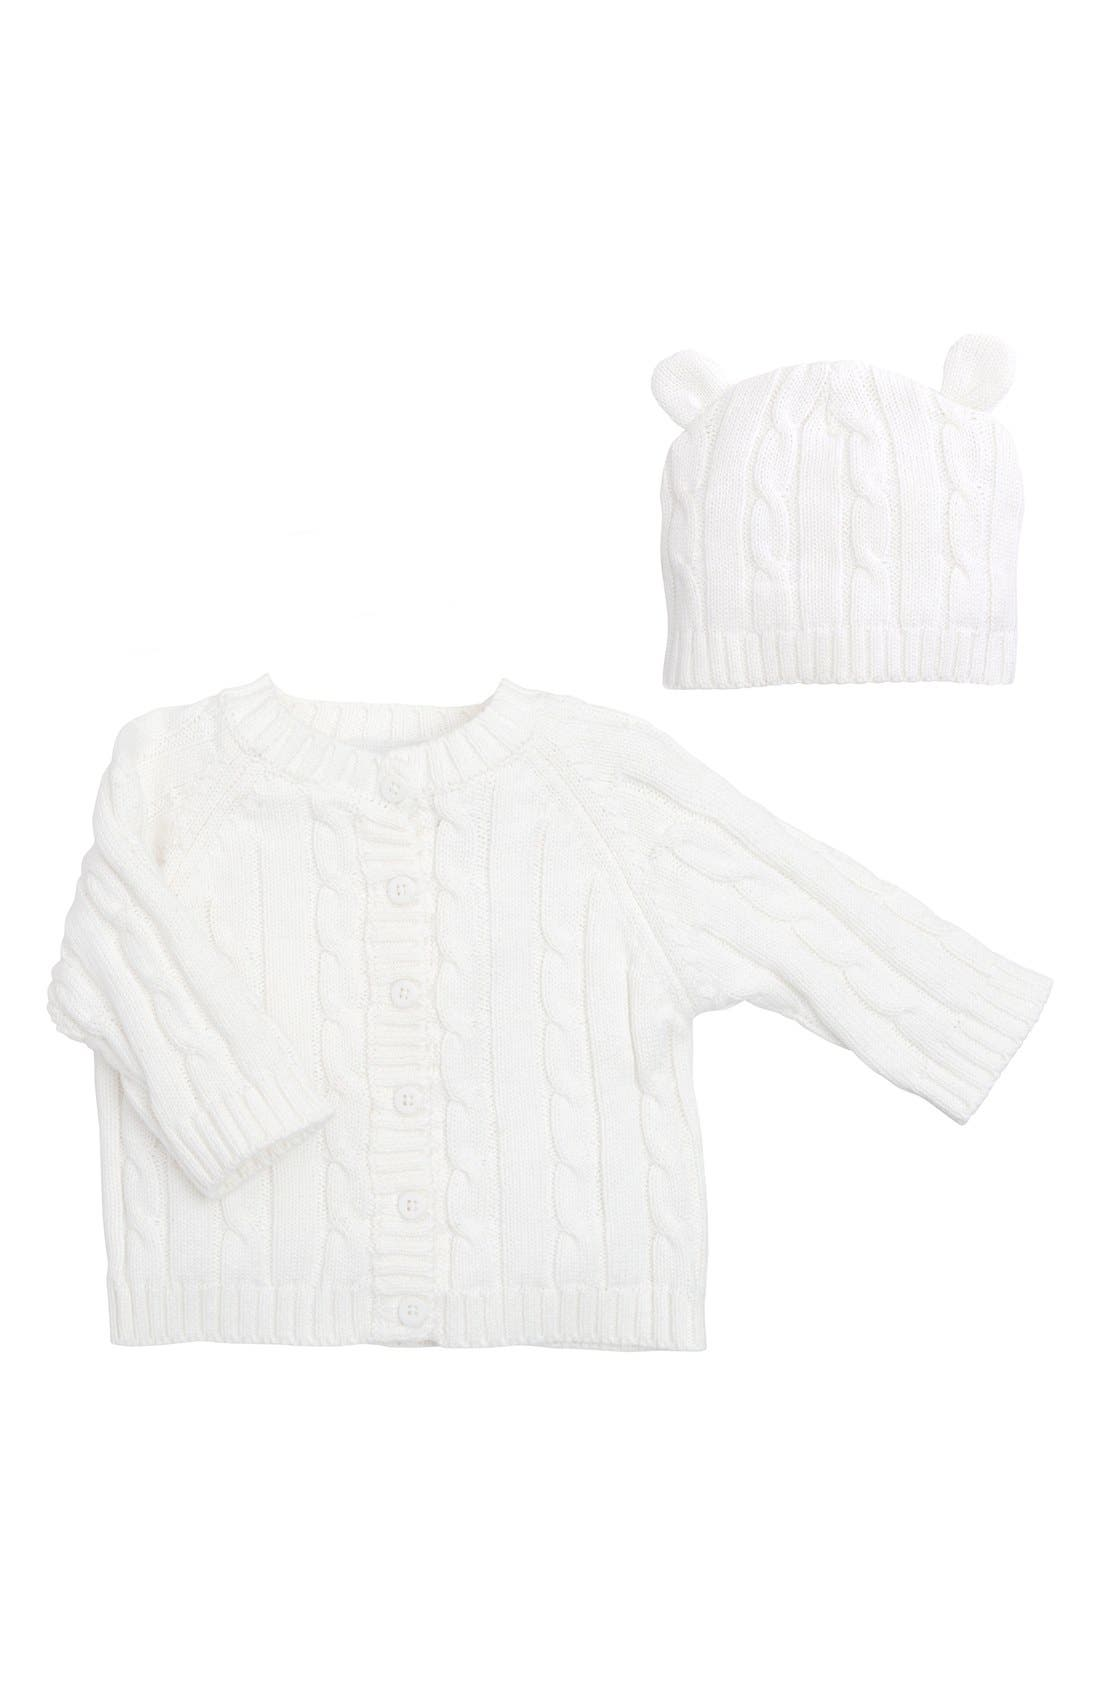 Cable Knit Sweater & Hat Set,                             Main thumbnail 1, color,                             WHITE